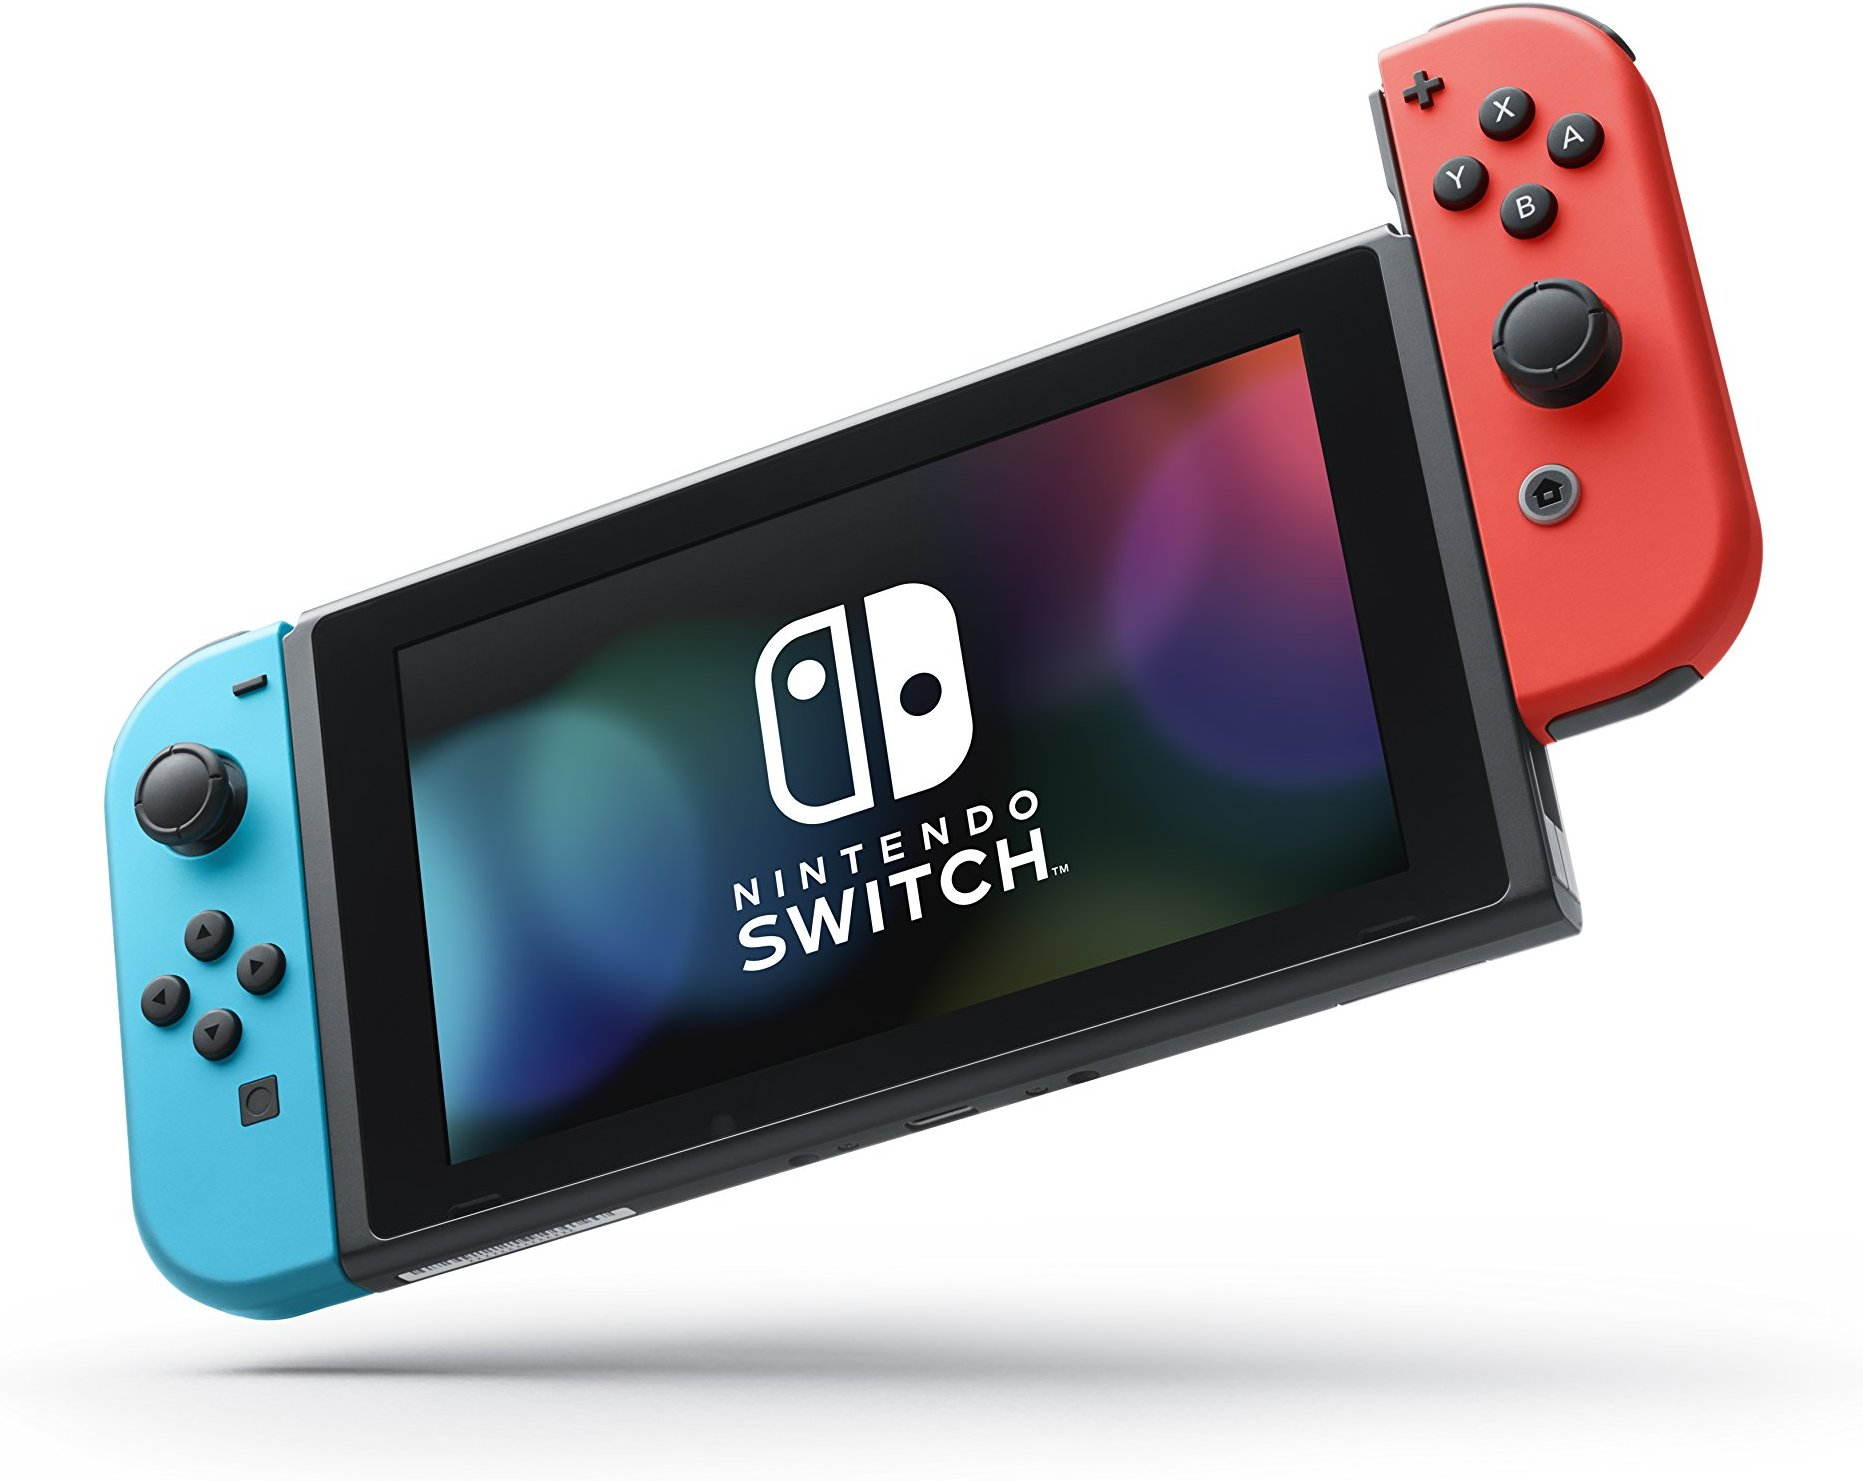 Nintendo Switch - Product of the year from OmarKnows. I LOVE LOVE LOVE this product. I cannot describe how much joy it's brought me and my kids. Zelda is the hero game and Mario Odyssey is a close second.If you have a child (or adult that grew up playing Zelda) don't hesitate to get this.